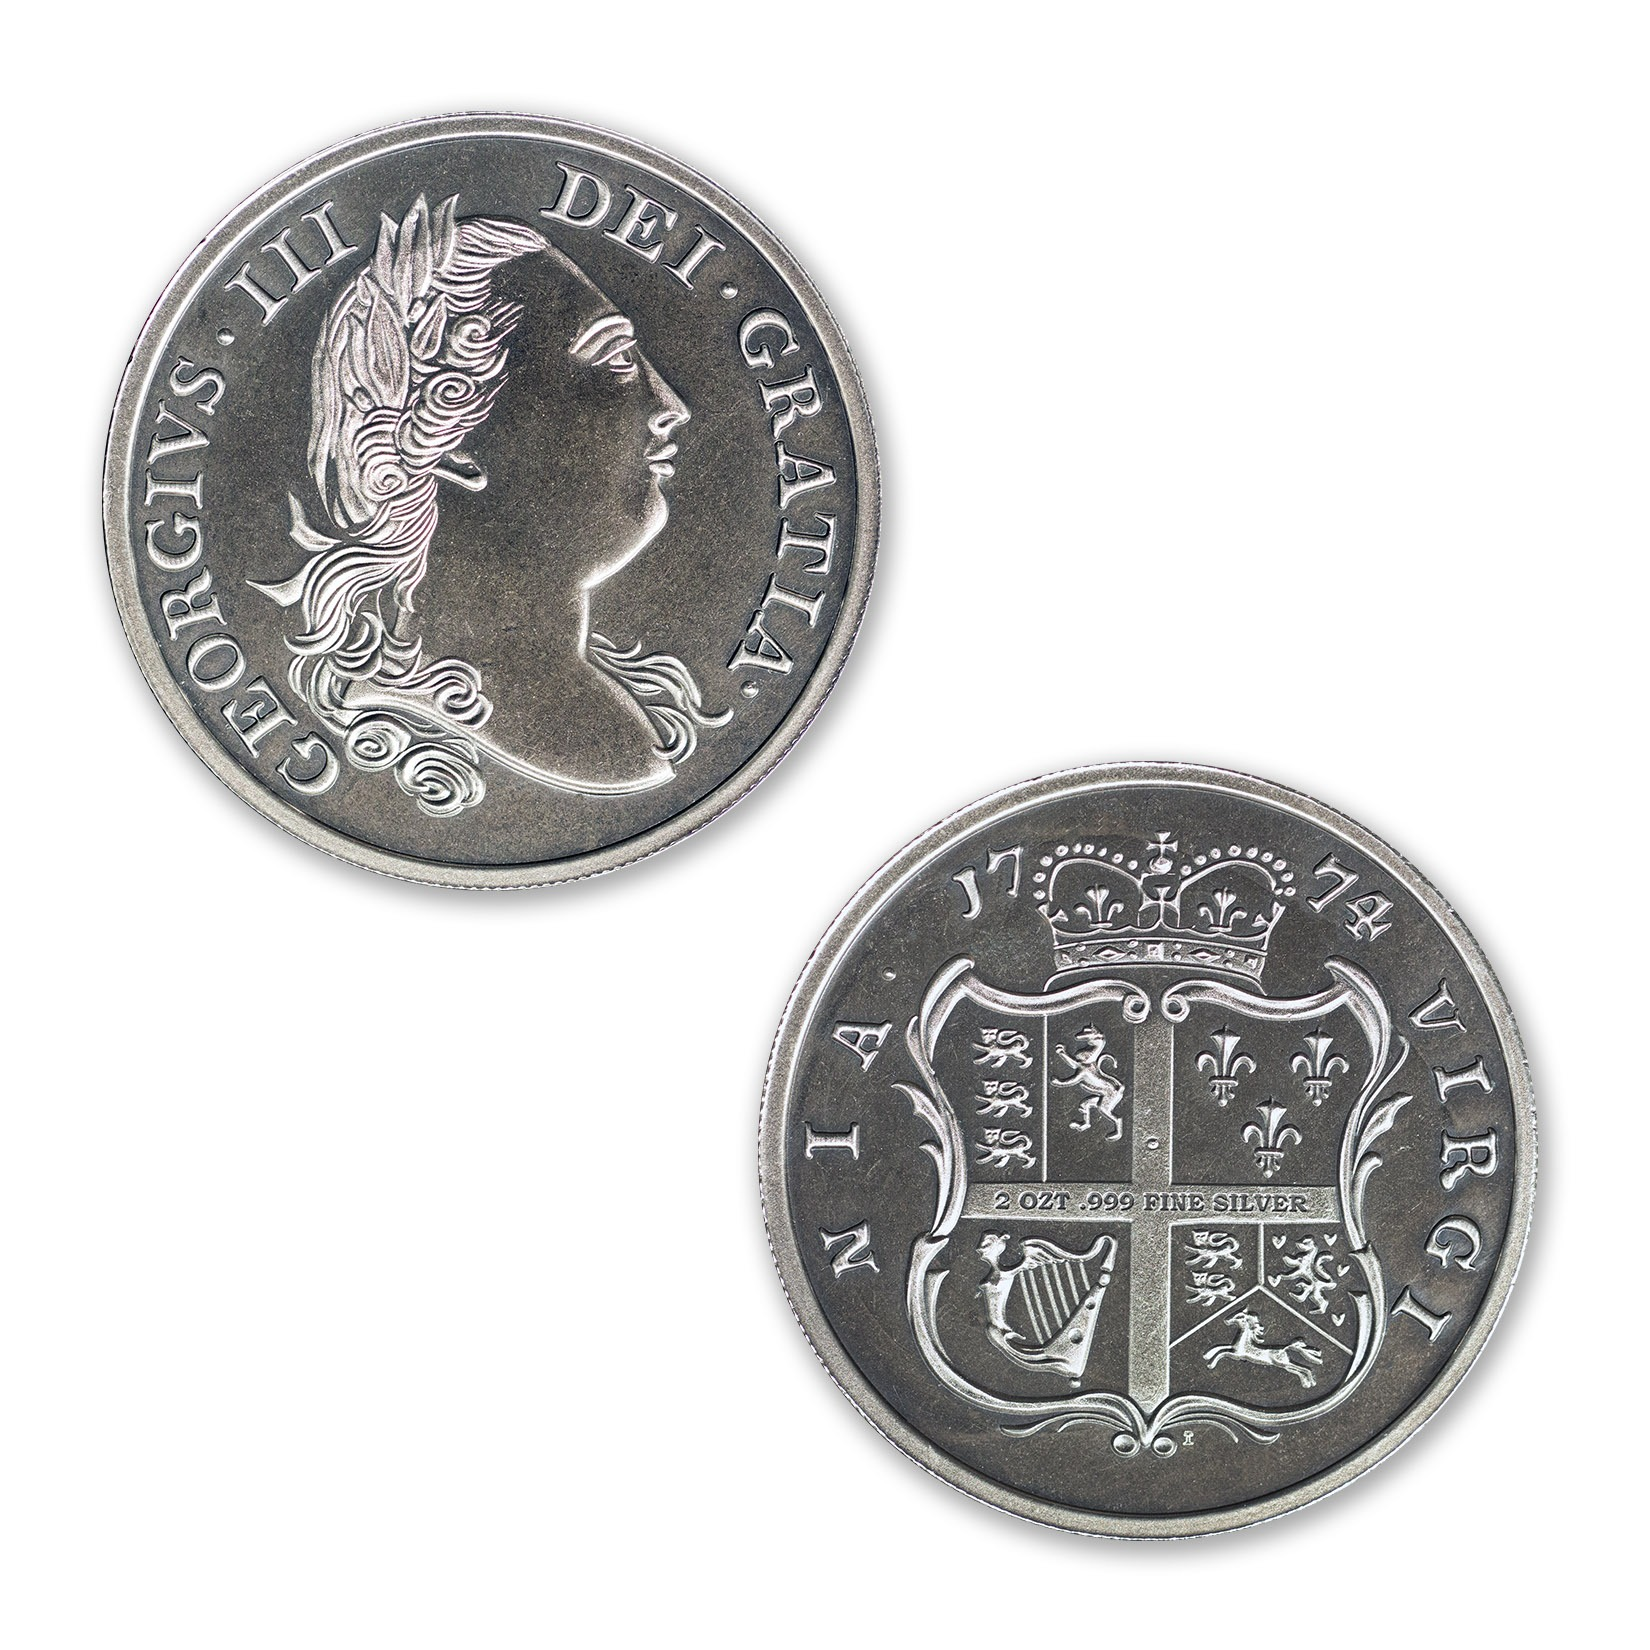 VIRGINIA SHILLING – 2 TROY OUNCE – 39MM (ANTIQUED)